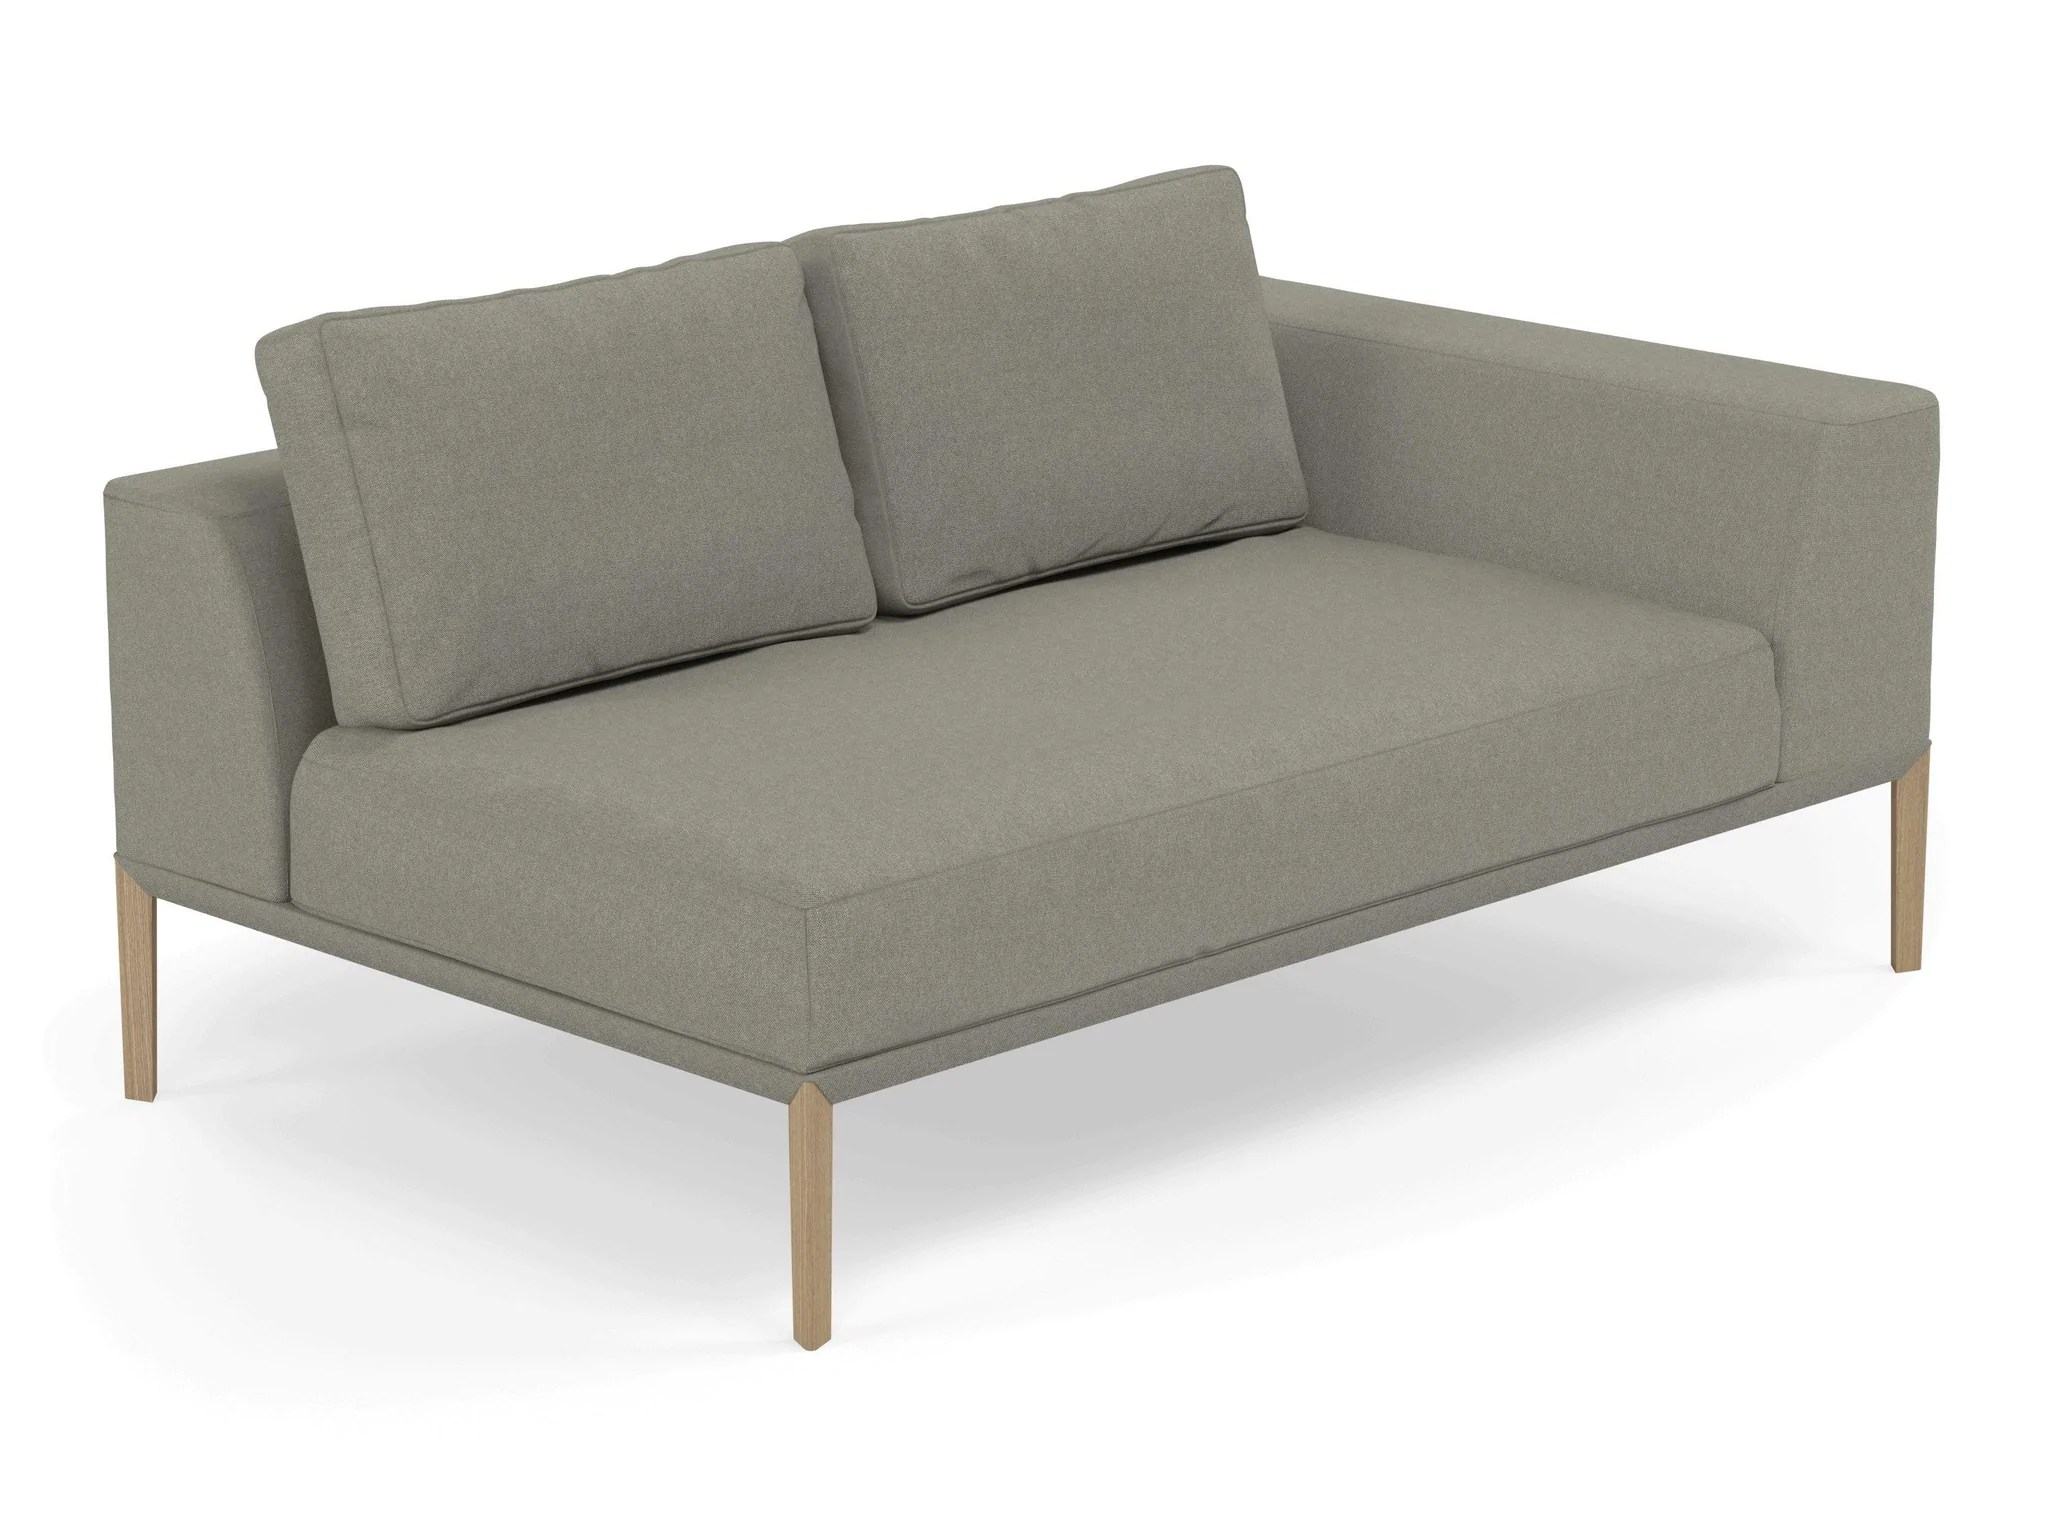 Modern 2 Seater Chaise Lounge Style Sofa With Left Armrest In Silver G Distinct Designs London Ltd